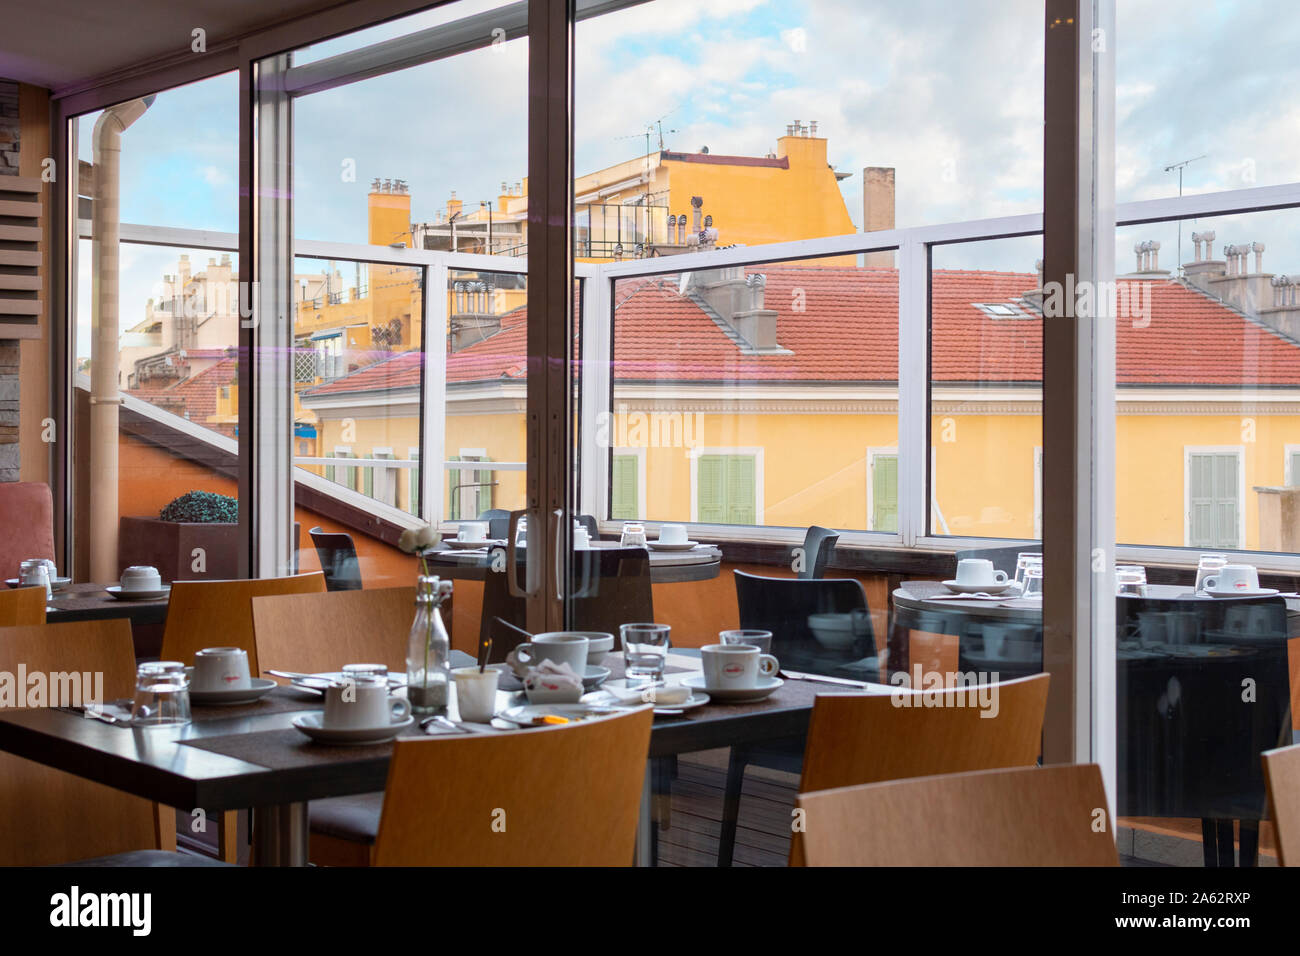 An empty table yet to be cleaned at a rooftop cafe in the Mediterranean city of Nice France. Stock Photo